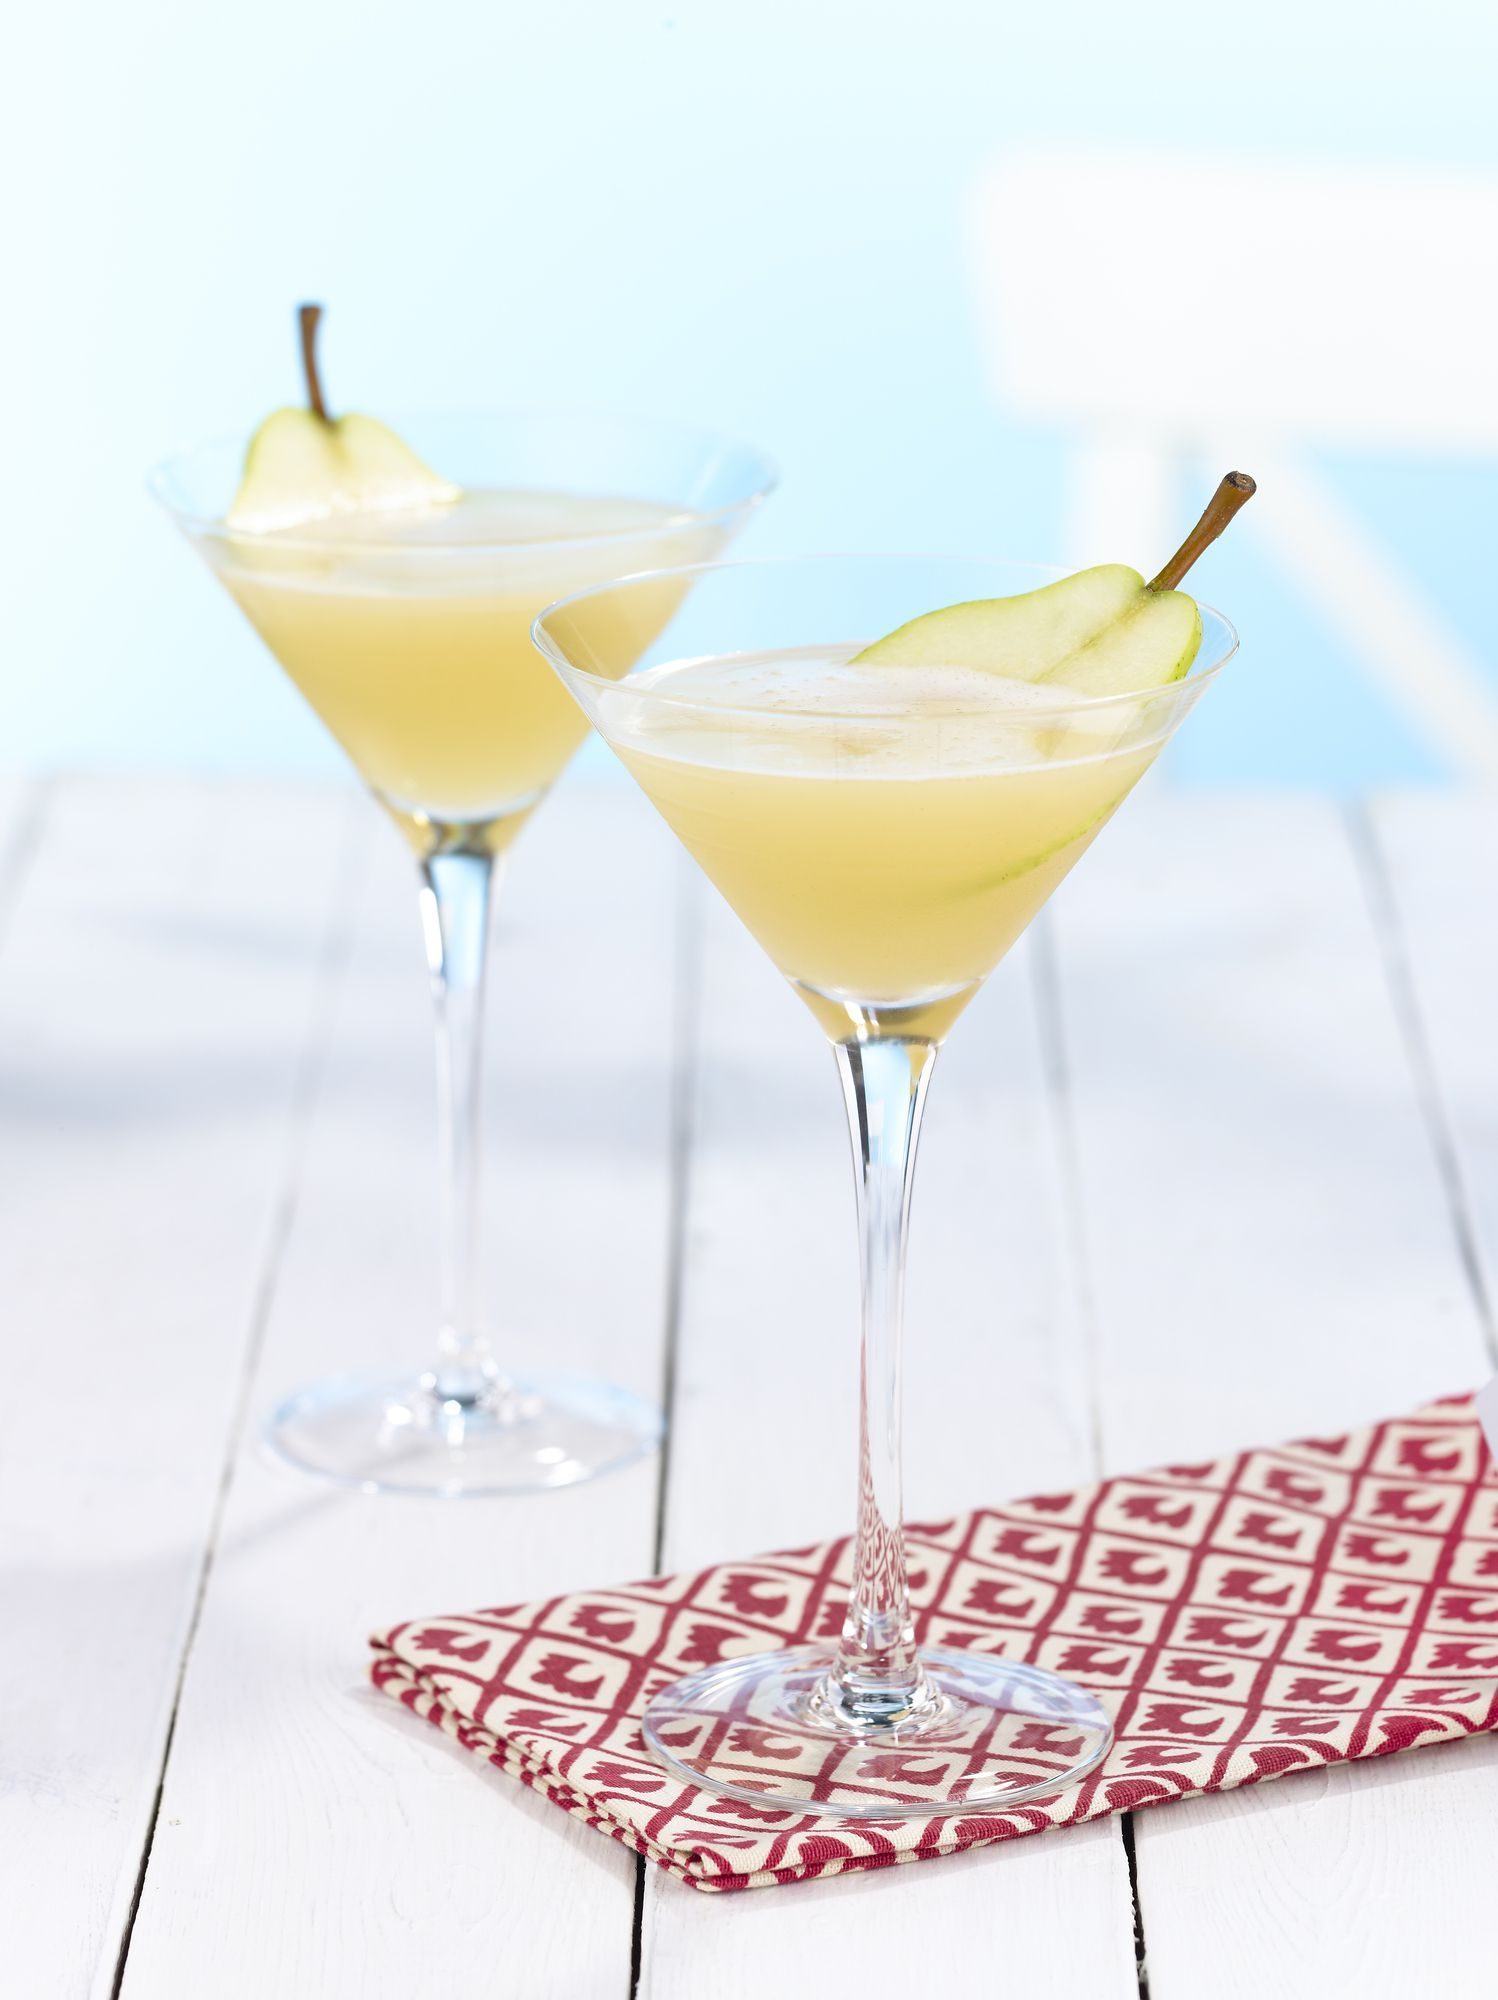 Enjoy the Lovely Lotus Blossom #lycheemartini